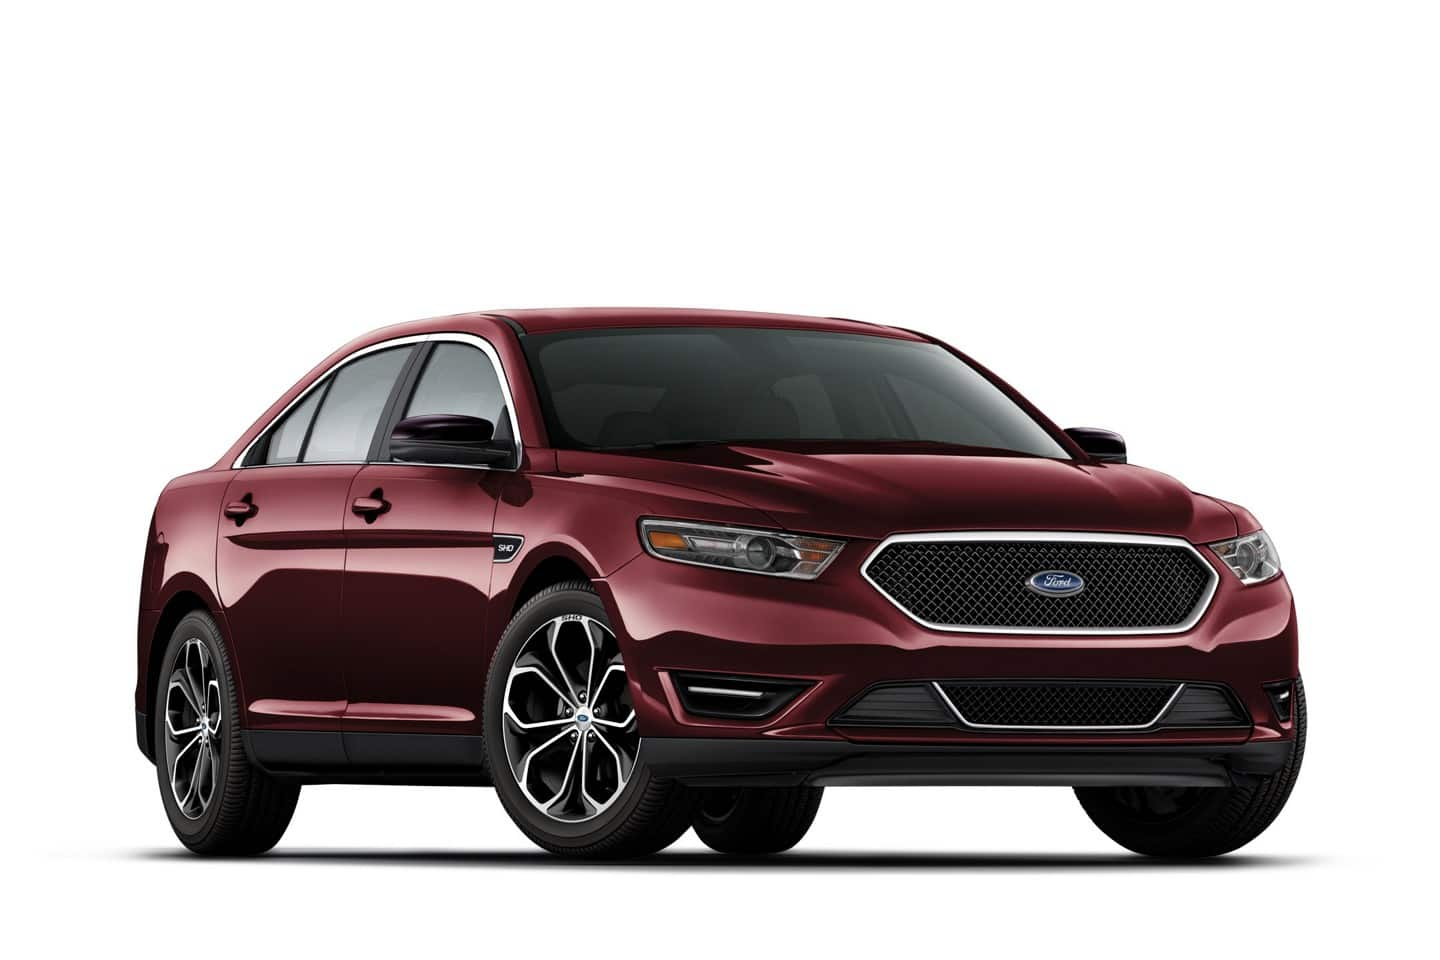 36 Best Review Ford Taurus Sho 2020 Configurations with Ford Taurus Sho 2020